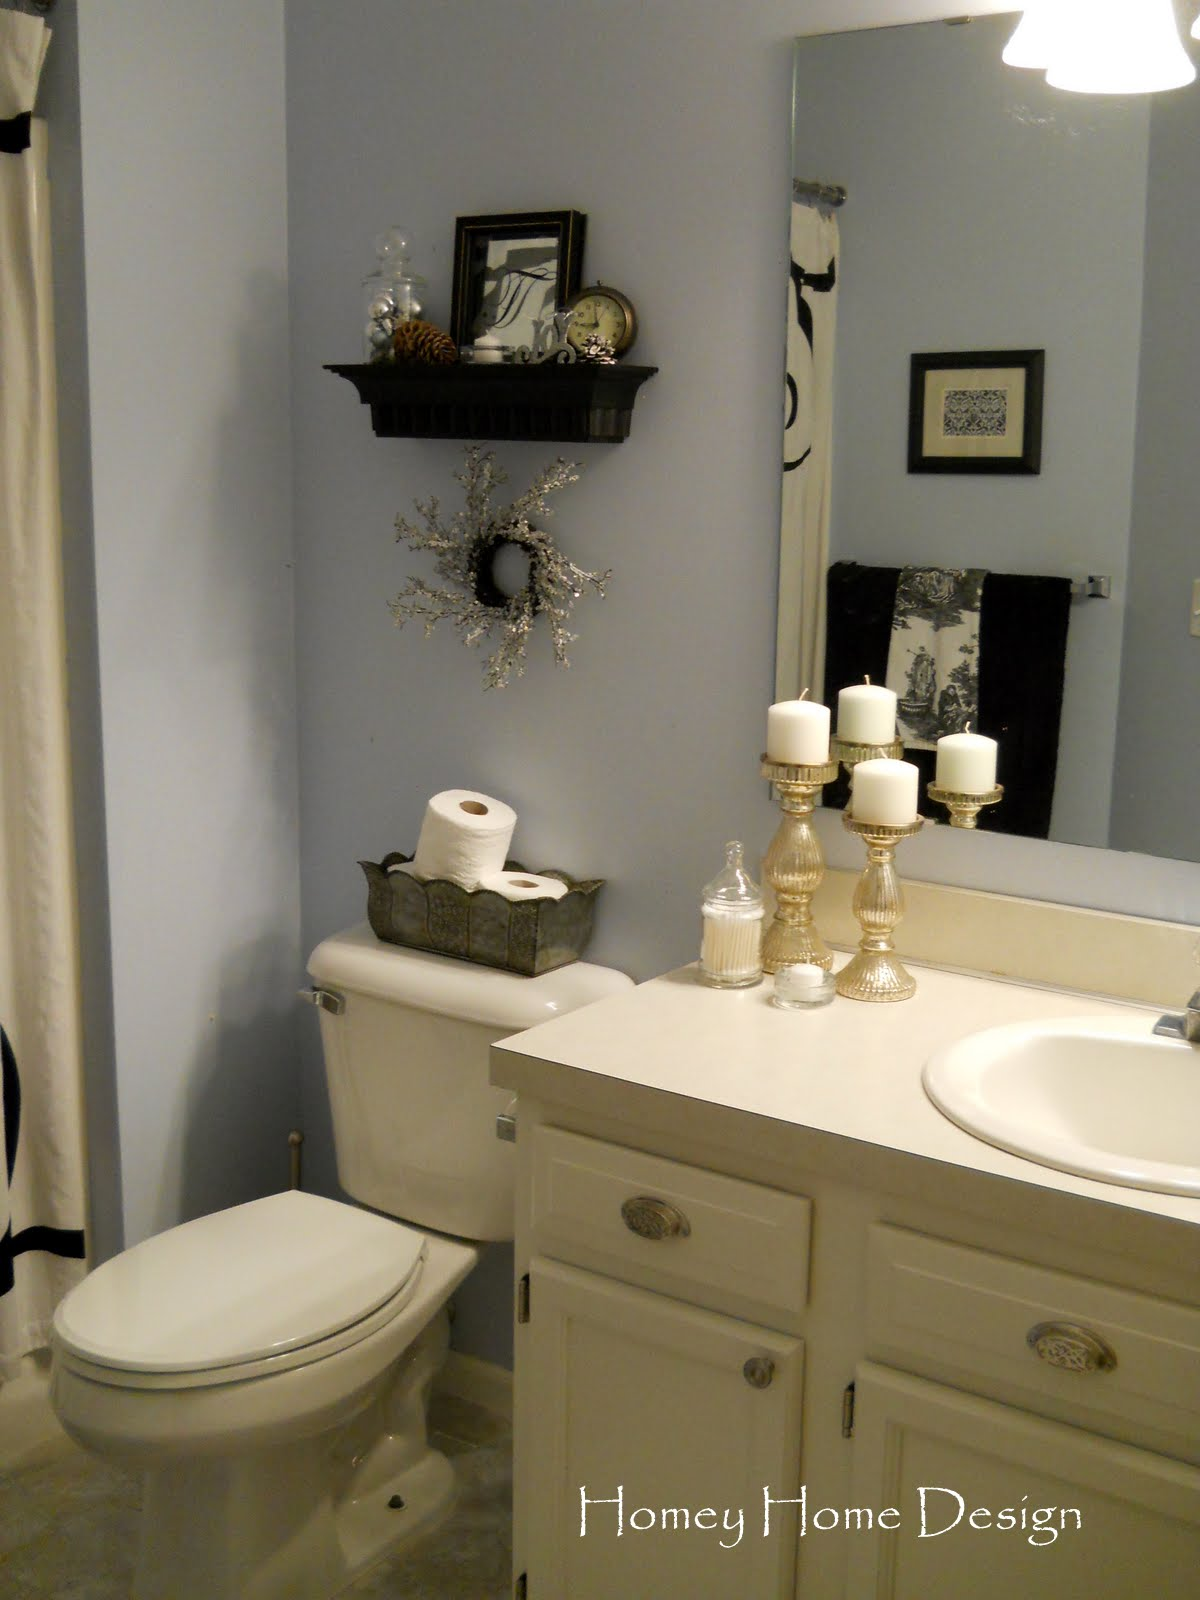 Homey home design christmas in the bathroom for Bathroom decorating themes